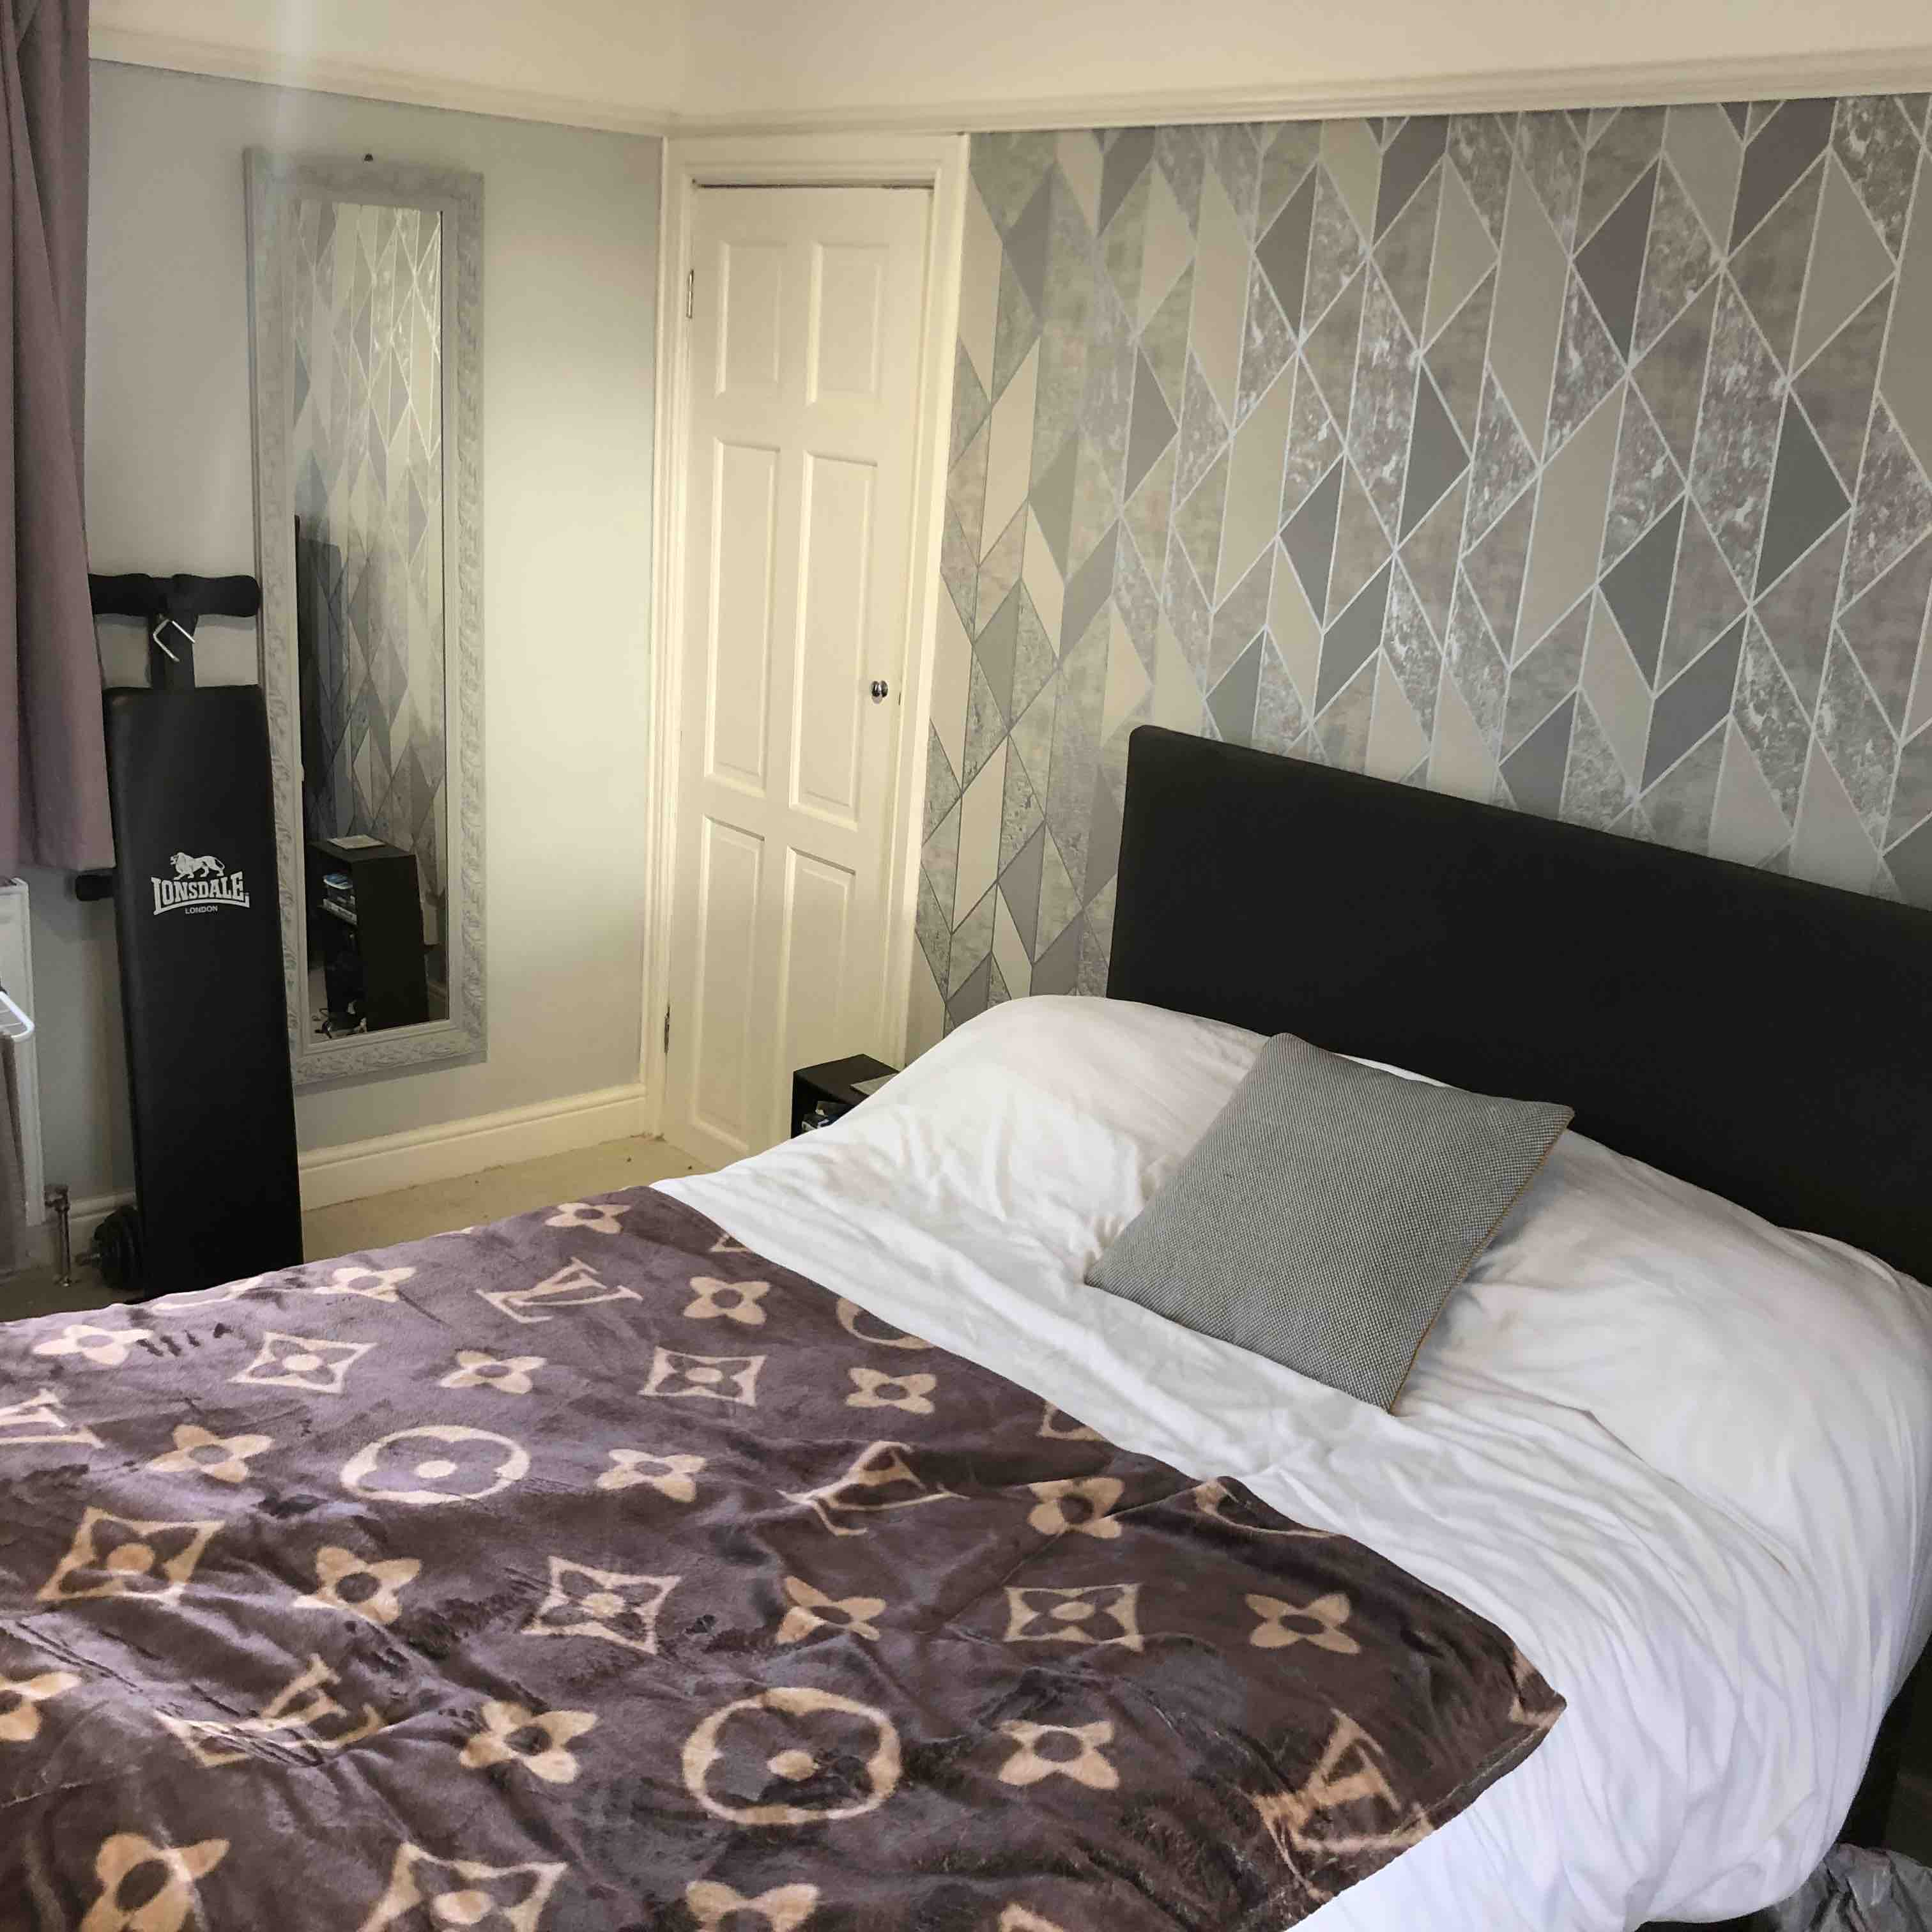 1 room in East-The-Water, Bideford, EX394BS RoomsLocal image